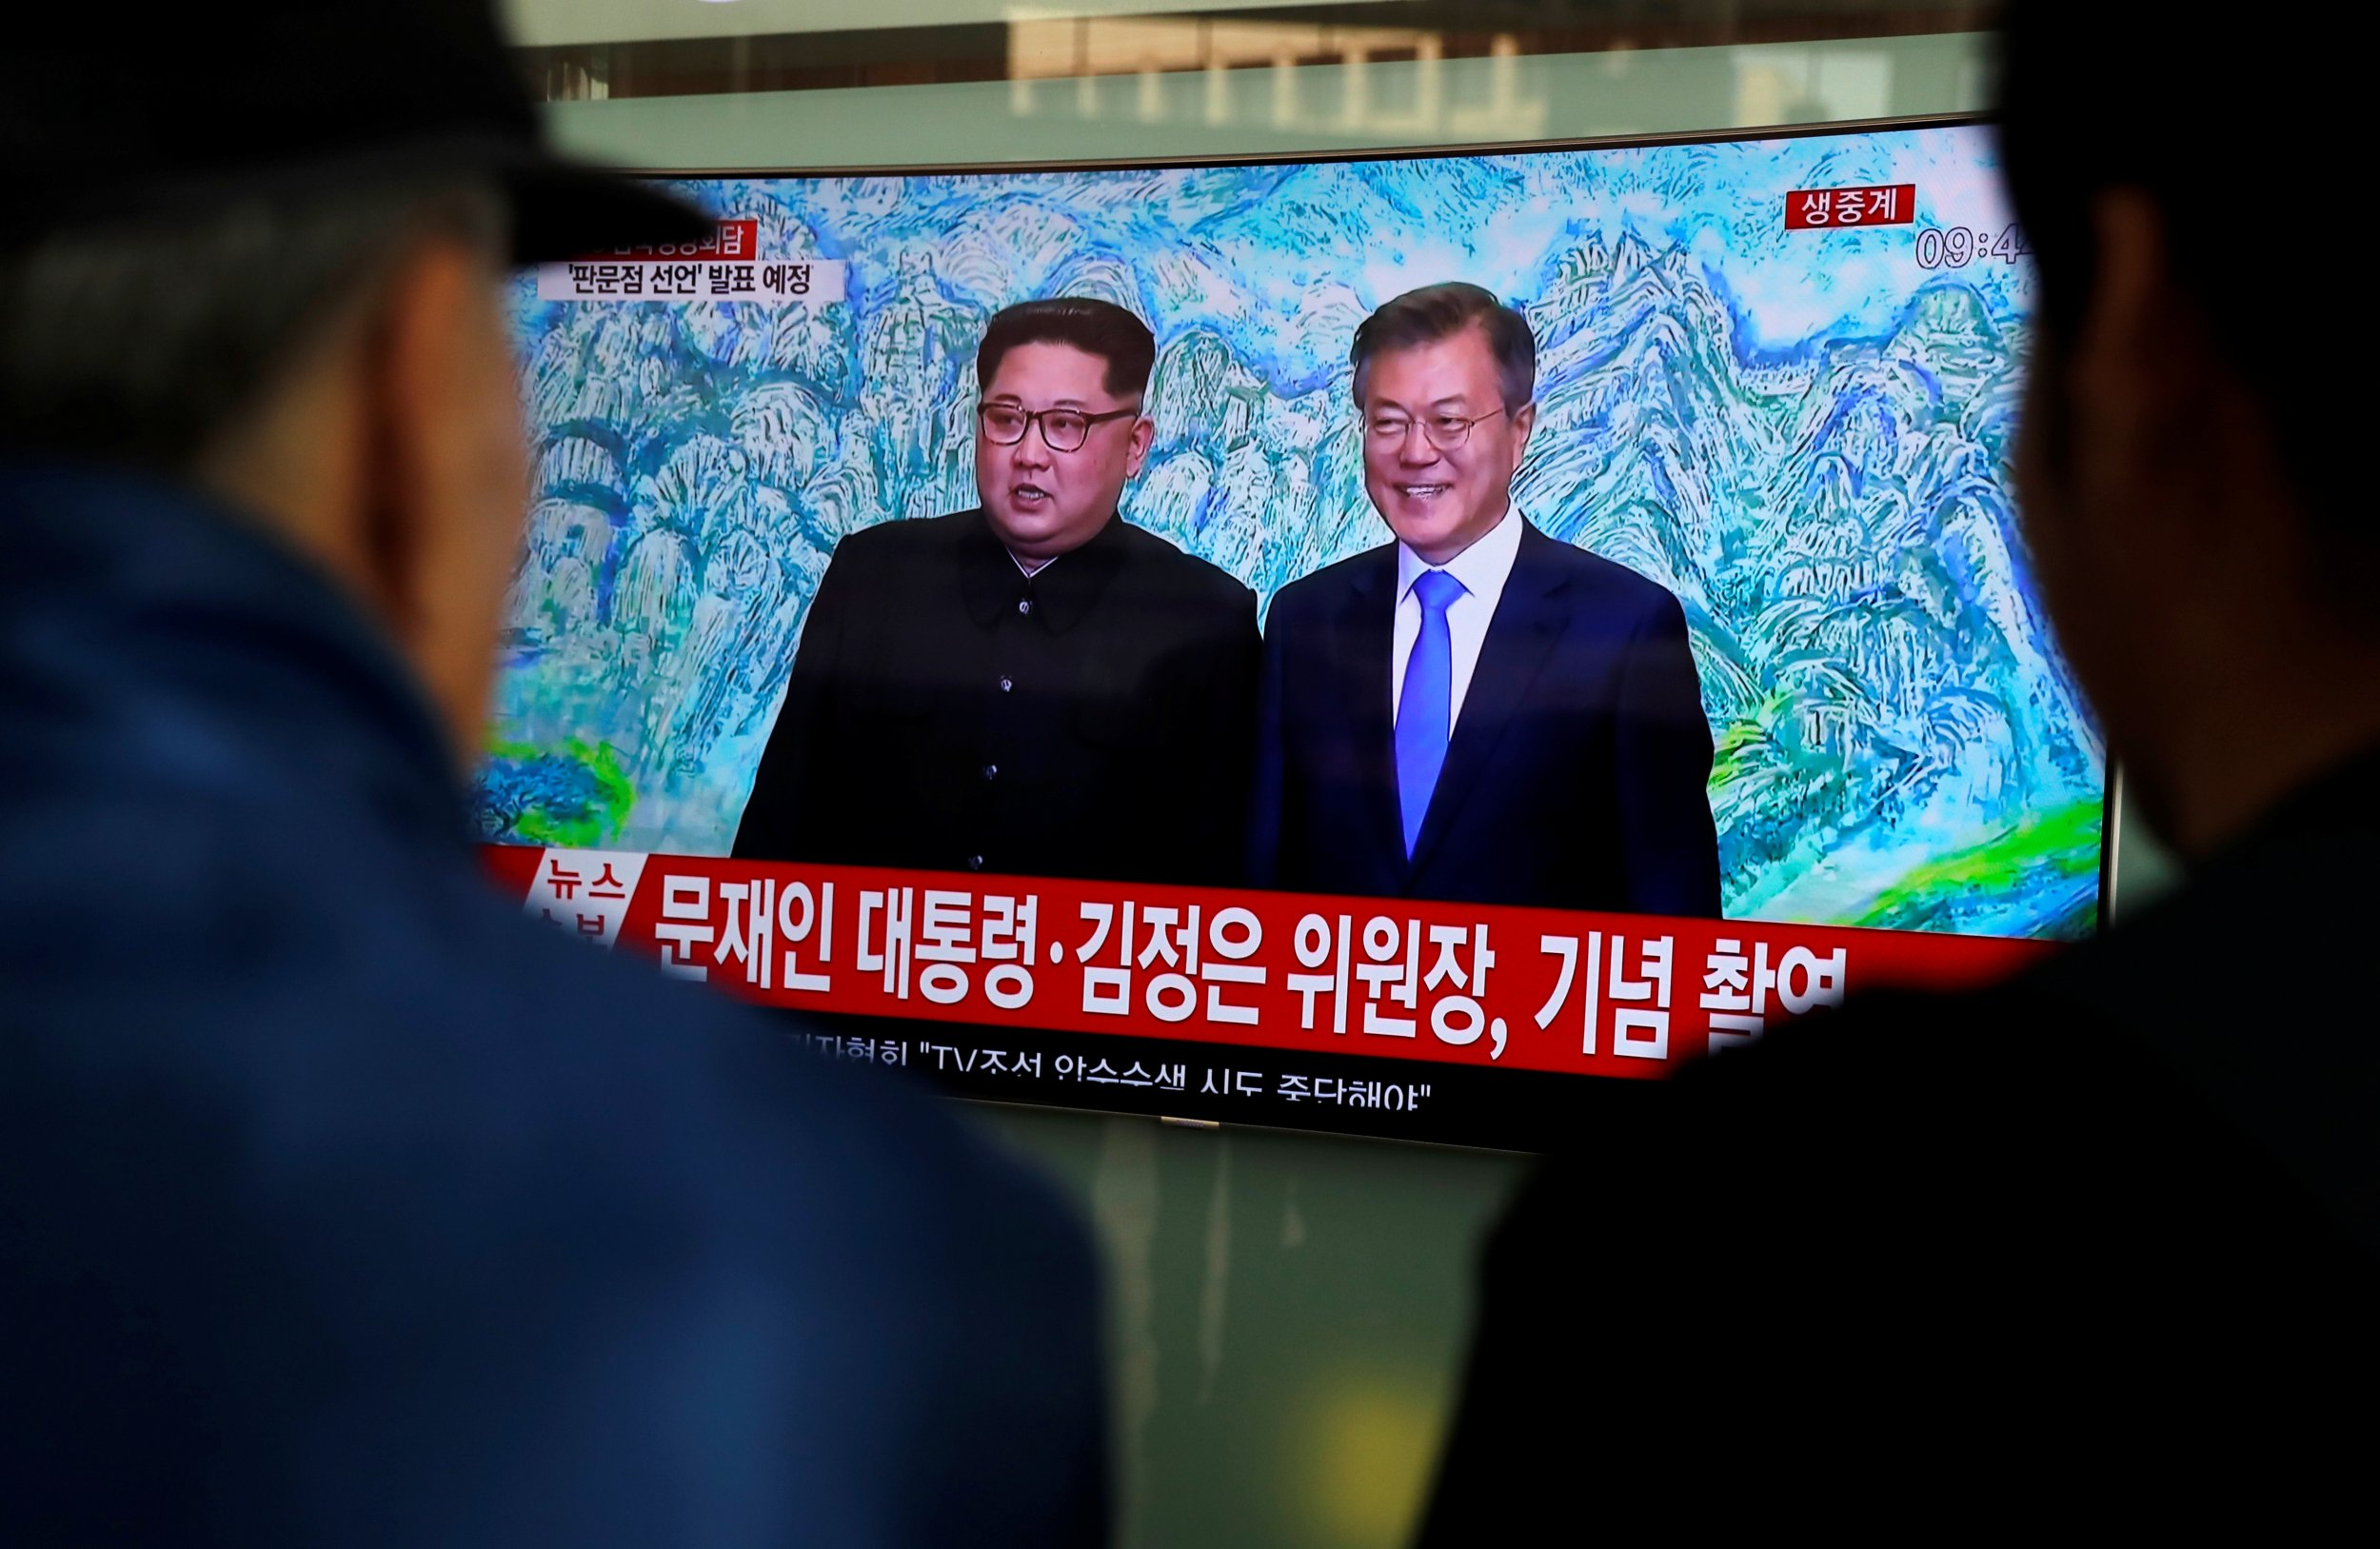 South Koreans Watch TV